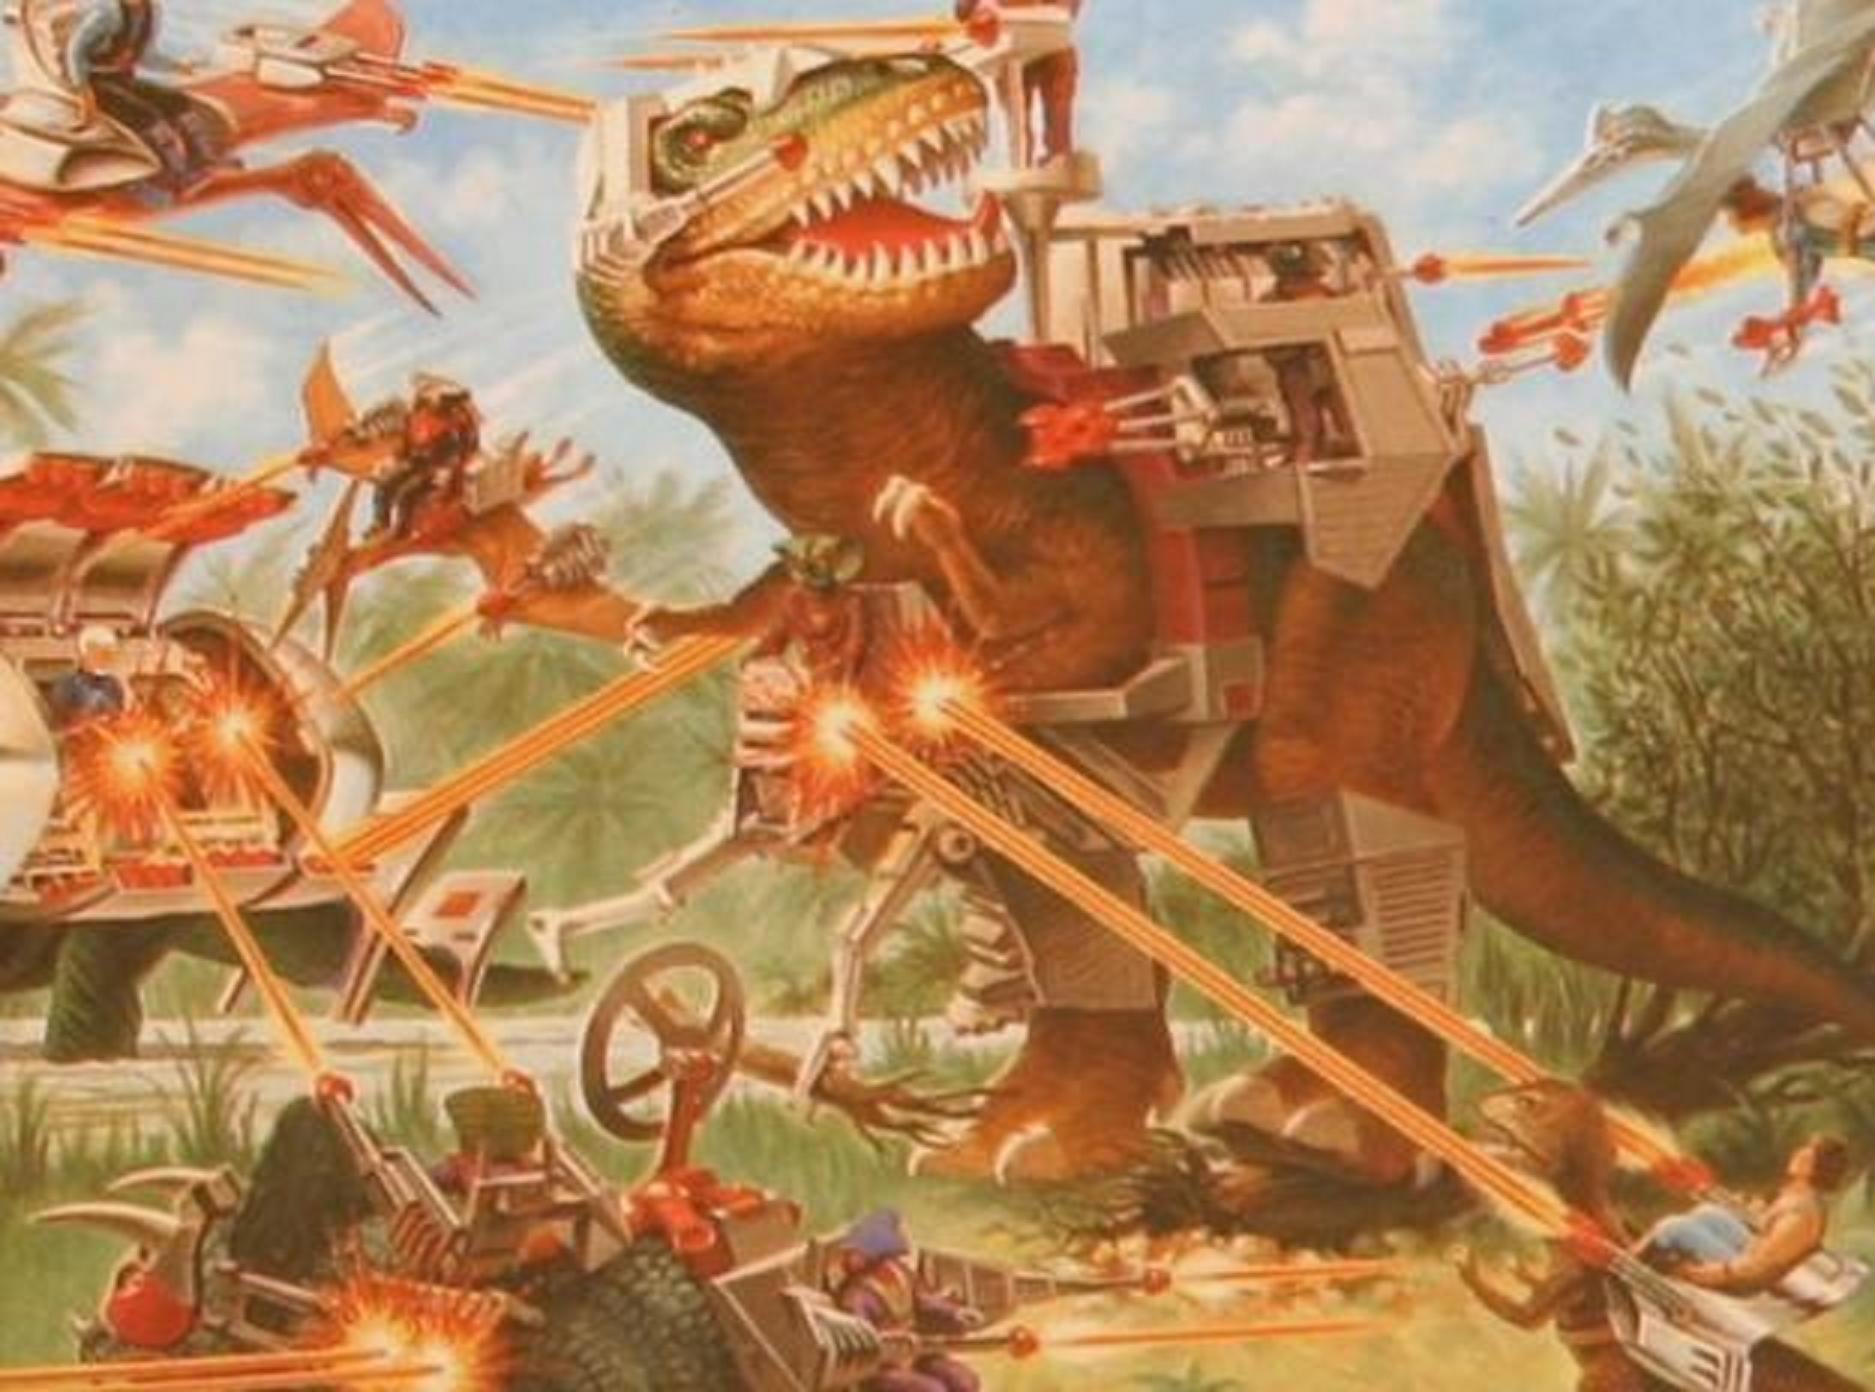 Dinosaurs Dino Riders Lasers HD Wallpaper